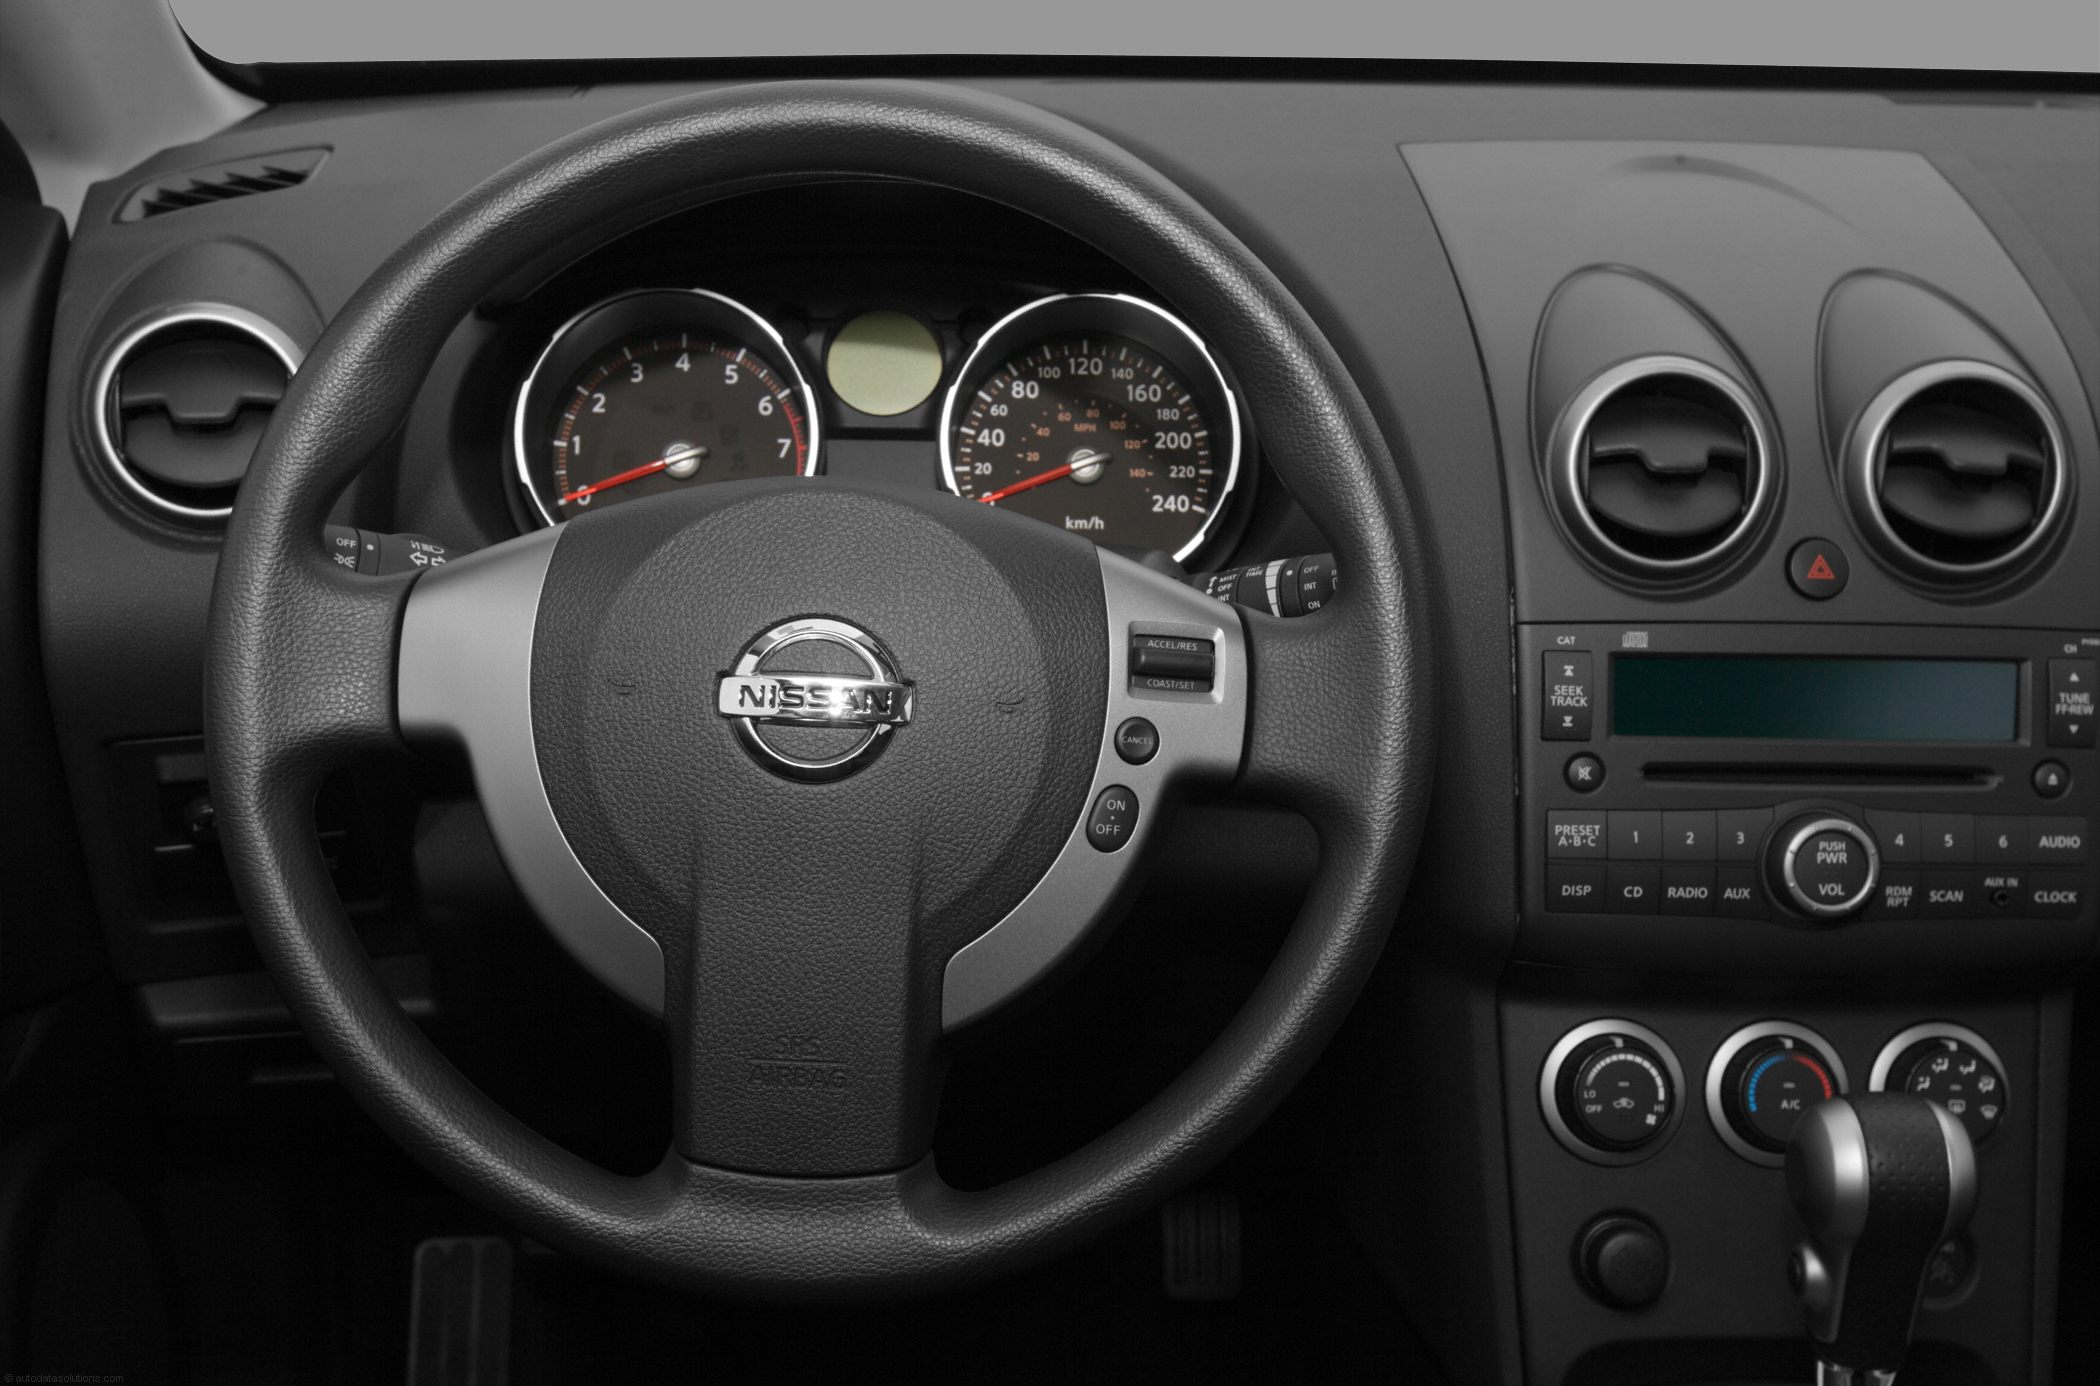 2010 Nissan Rogue - Information and photos - ZombieDrive on nissan pathfinder, nissan x-trail, 2010 nissan leaf, 2010 nissan pathfinder, hyundai santa fe, 2010 nissan murano, nissan qashqai, 2010 nissan hybrid, 2010 nissan 300zx, nissan murano, nissan maxima, subaru forester, 2010 nissan xterra, toyota rogue, 2010 nissan skyline crossover, 2010 nissan altima, 2010 nissan sentra, toyota rav4, 2010 nissan quest, 2010 nissan juke, chevrolet equinox, 2010 nissan versa, 2010 nissan maxima, nissan xterra, 2010 nissan hardbody, toyota highlander, nissan sentra, mazda cx-5, 2010 nissan pickup, hyundai tucson, 2010 nissan frontier, ford escape, 2010 nissan genesis, nissan frontier, nissan juke, nissan armada, 2010 nissan armada, nissan altima, honda cr-v, 2010 nissan x terra,